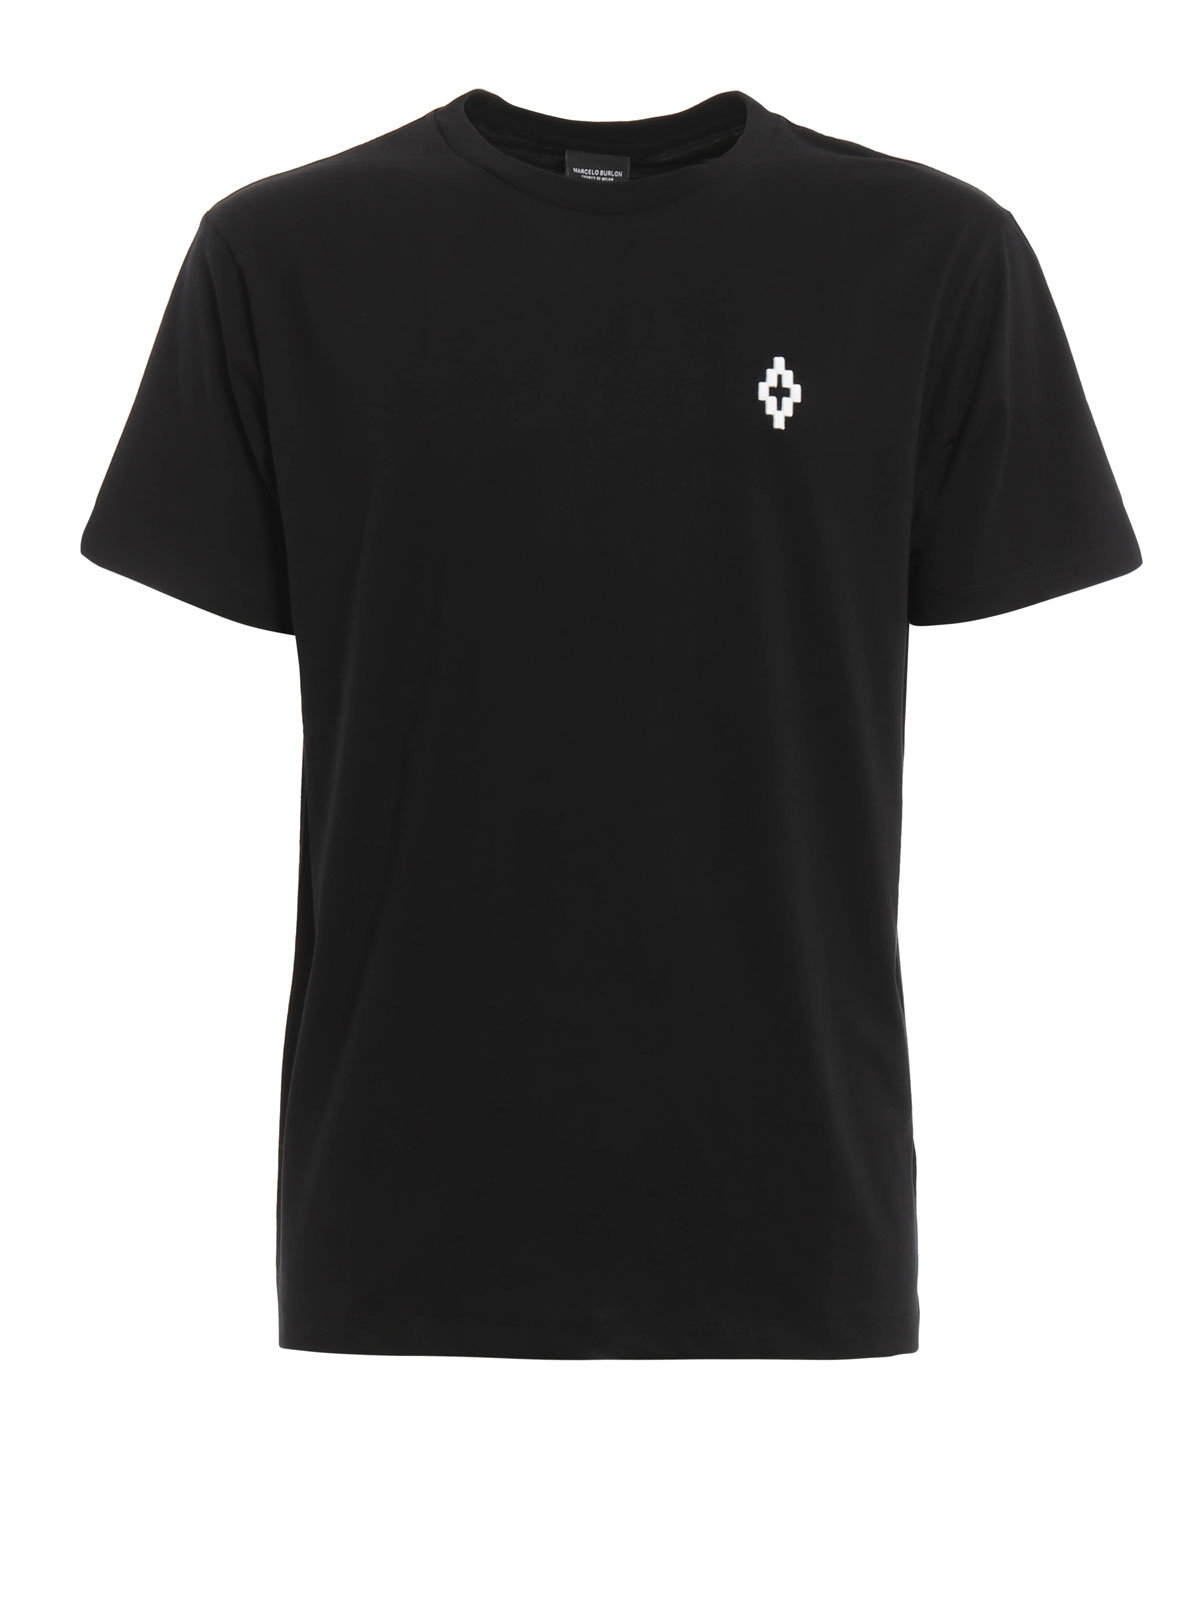 Embroidered logo cerro t shirt by marcelo burlon t for T shirt with embroidered logo